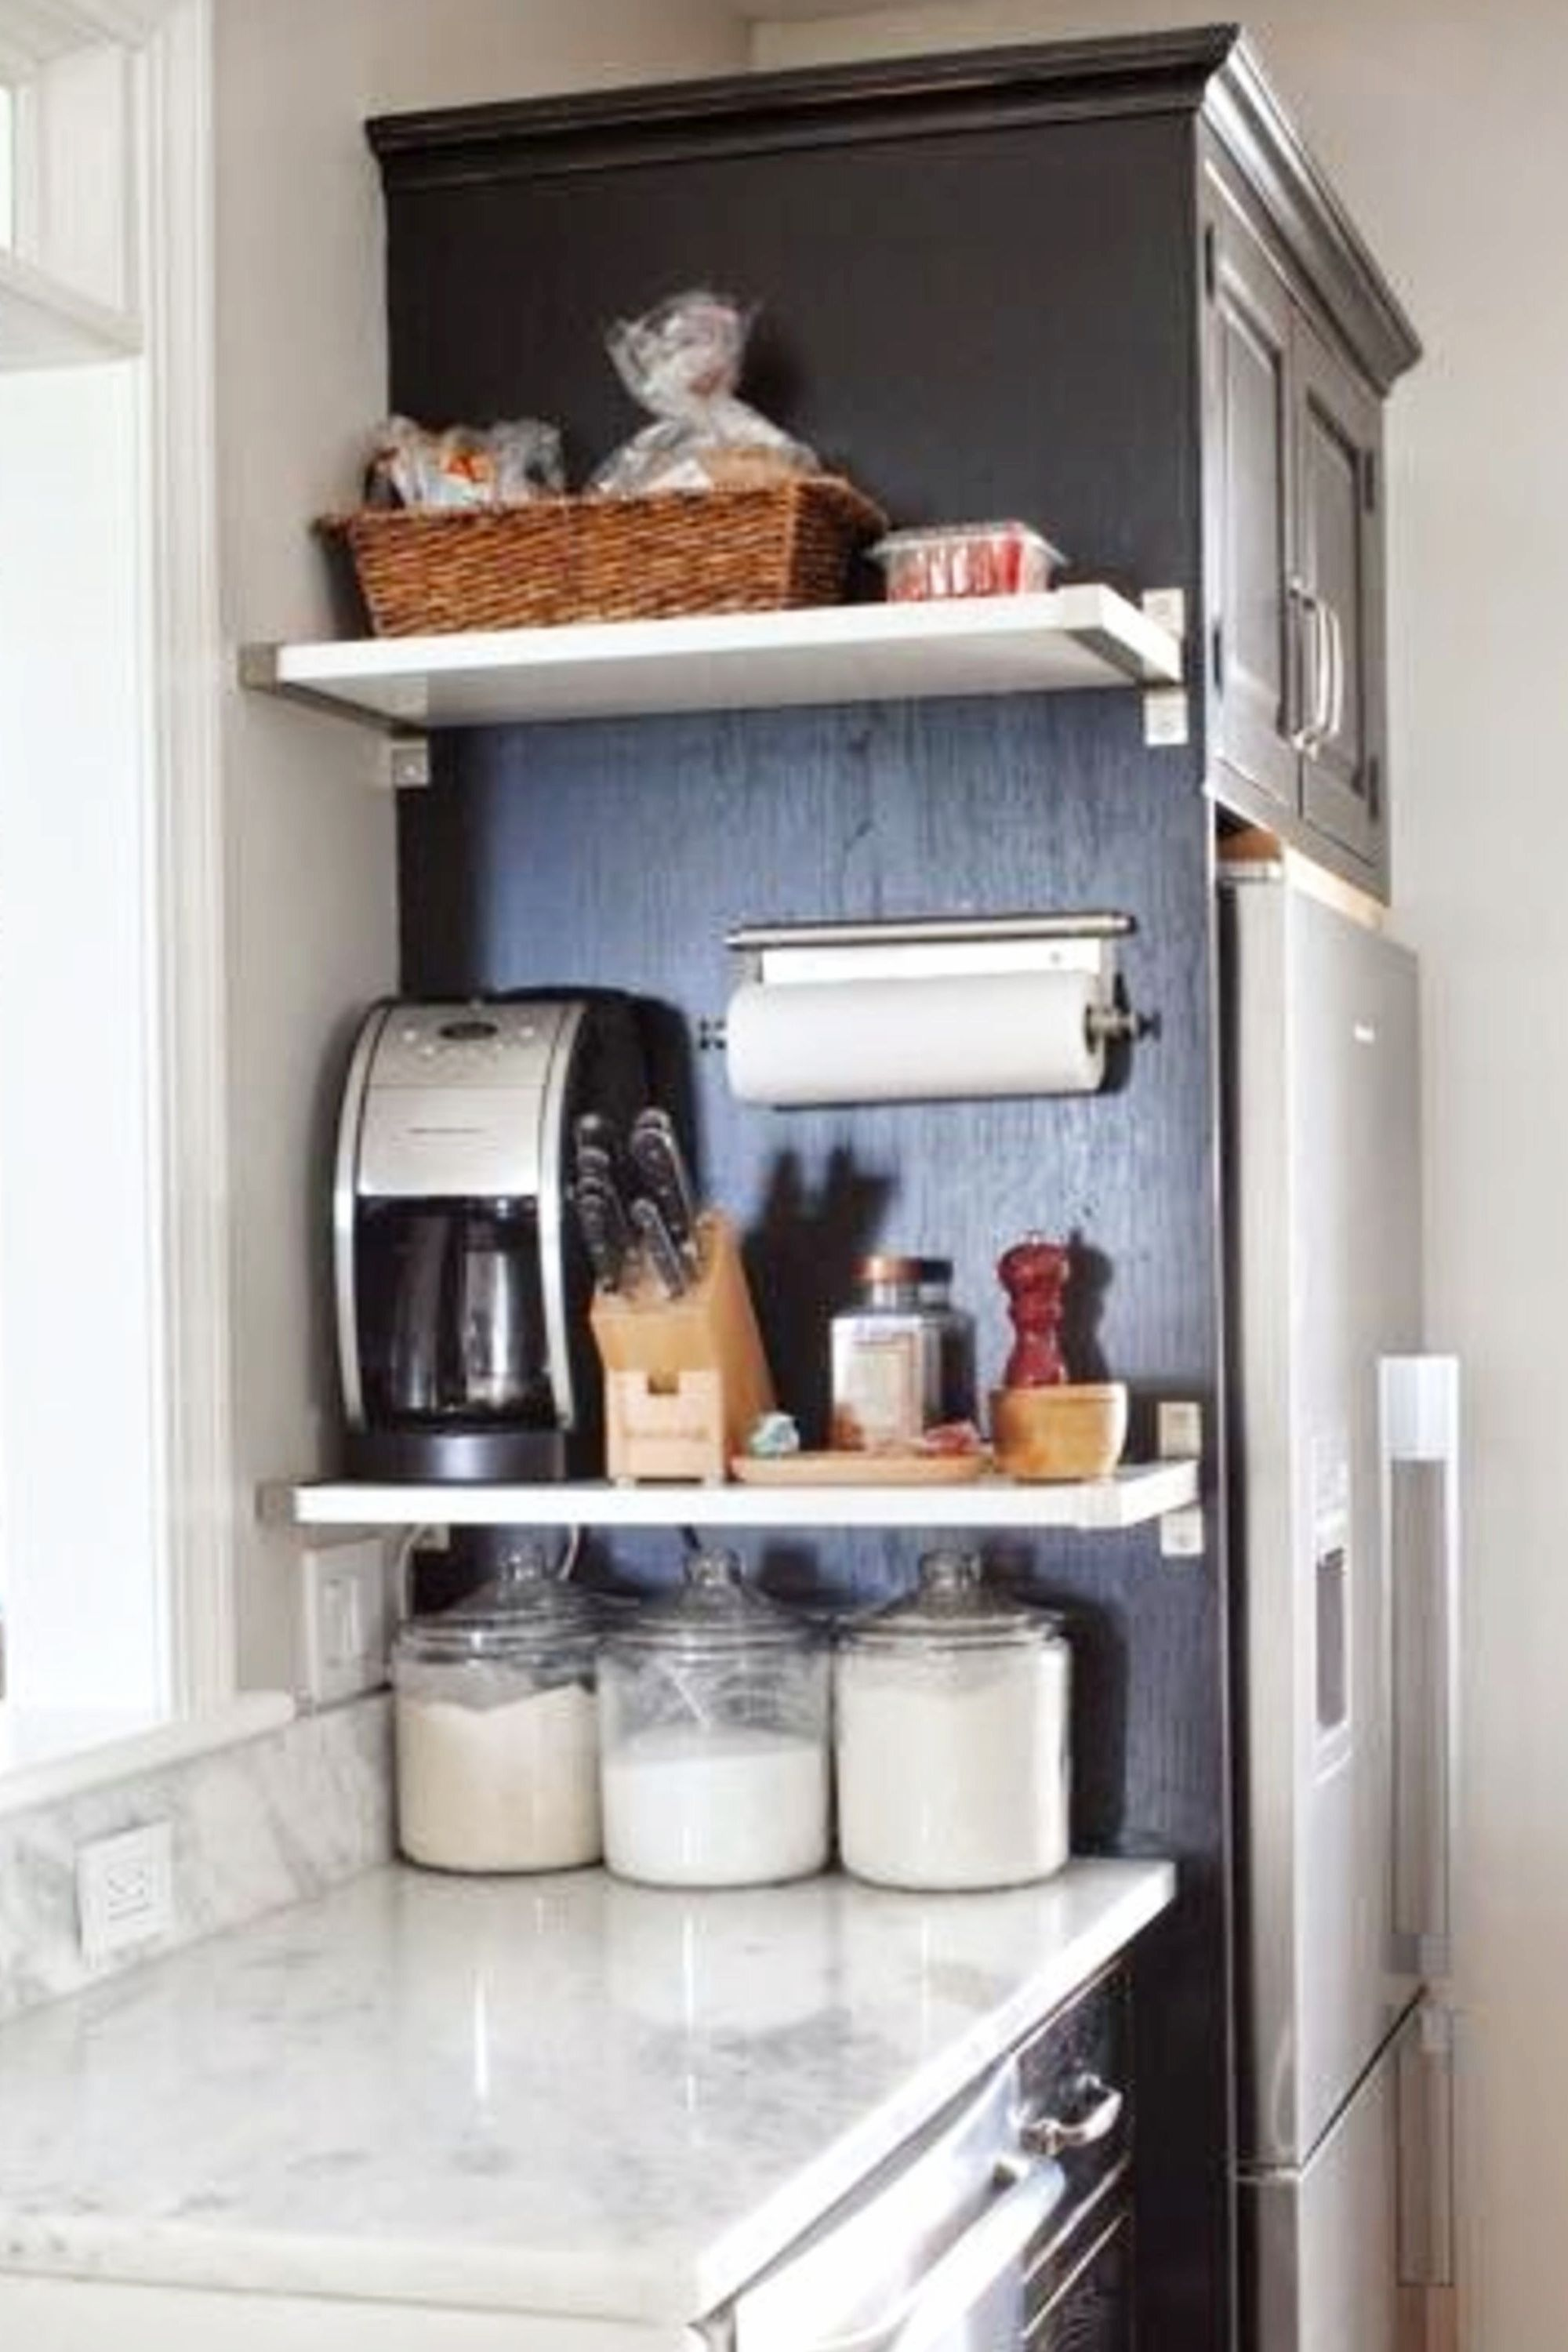 How To Arrange Appliances In Small Kitchens Without Adding More